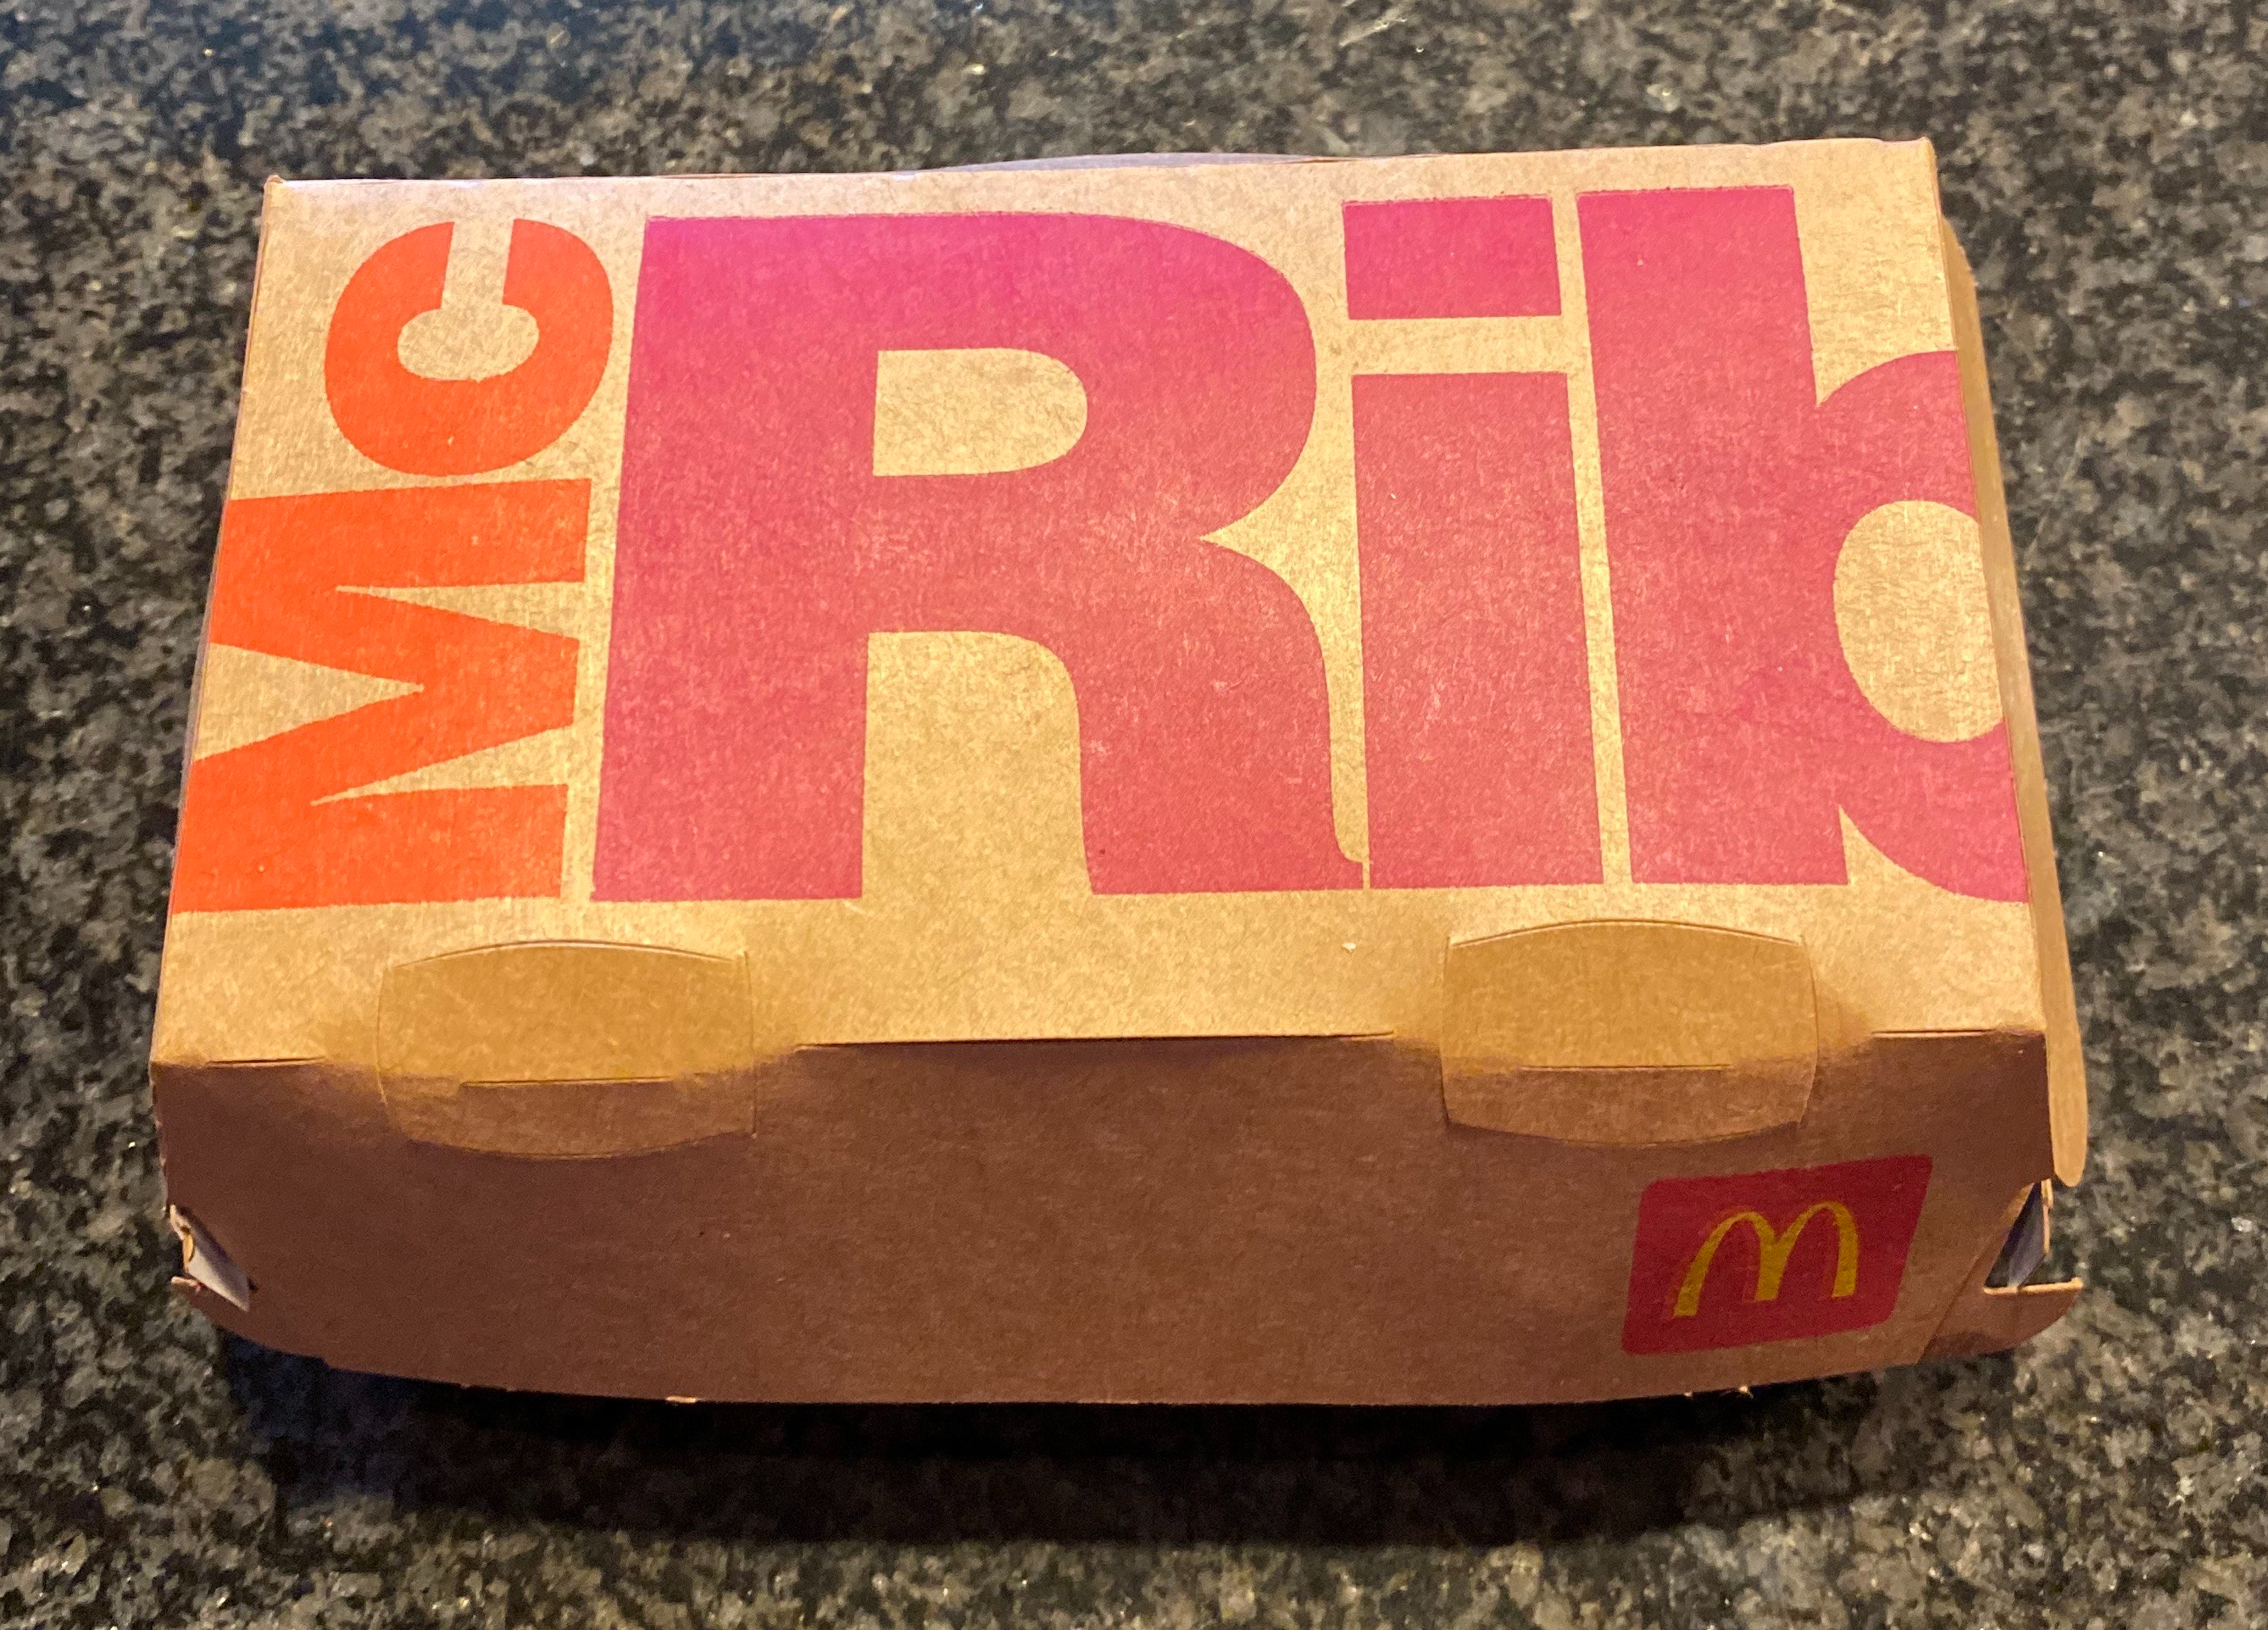 The McRib comes in its own packaging and its own barbecue sauce.